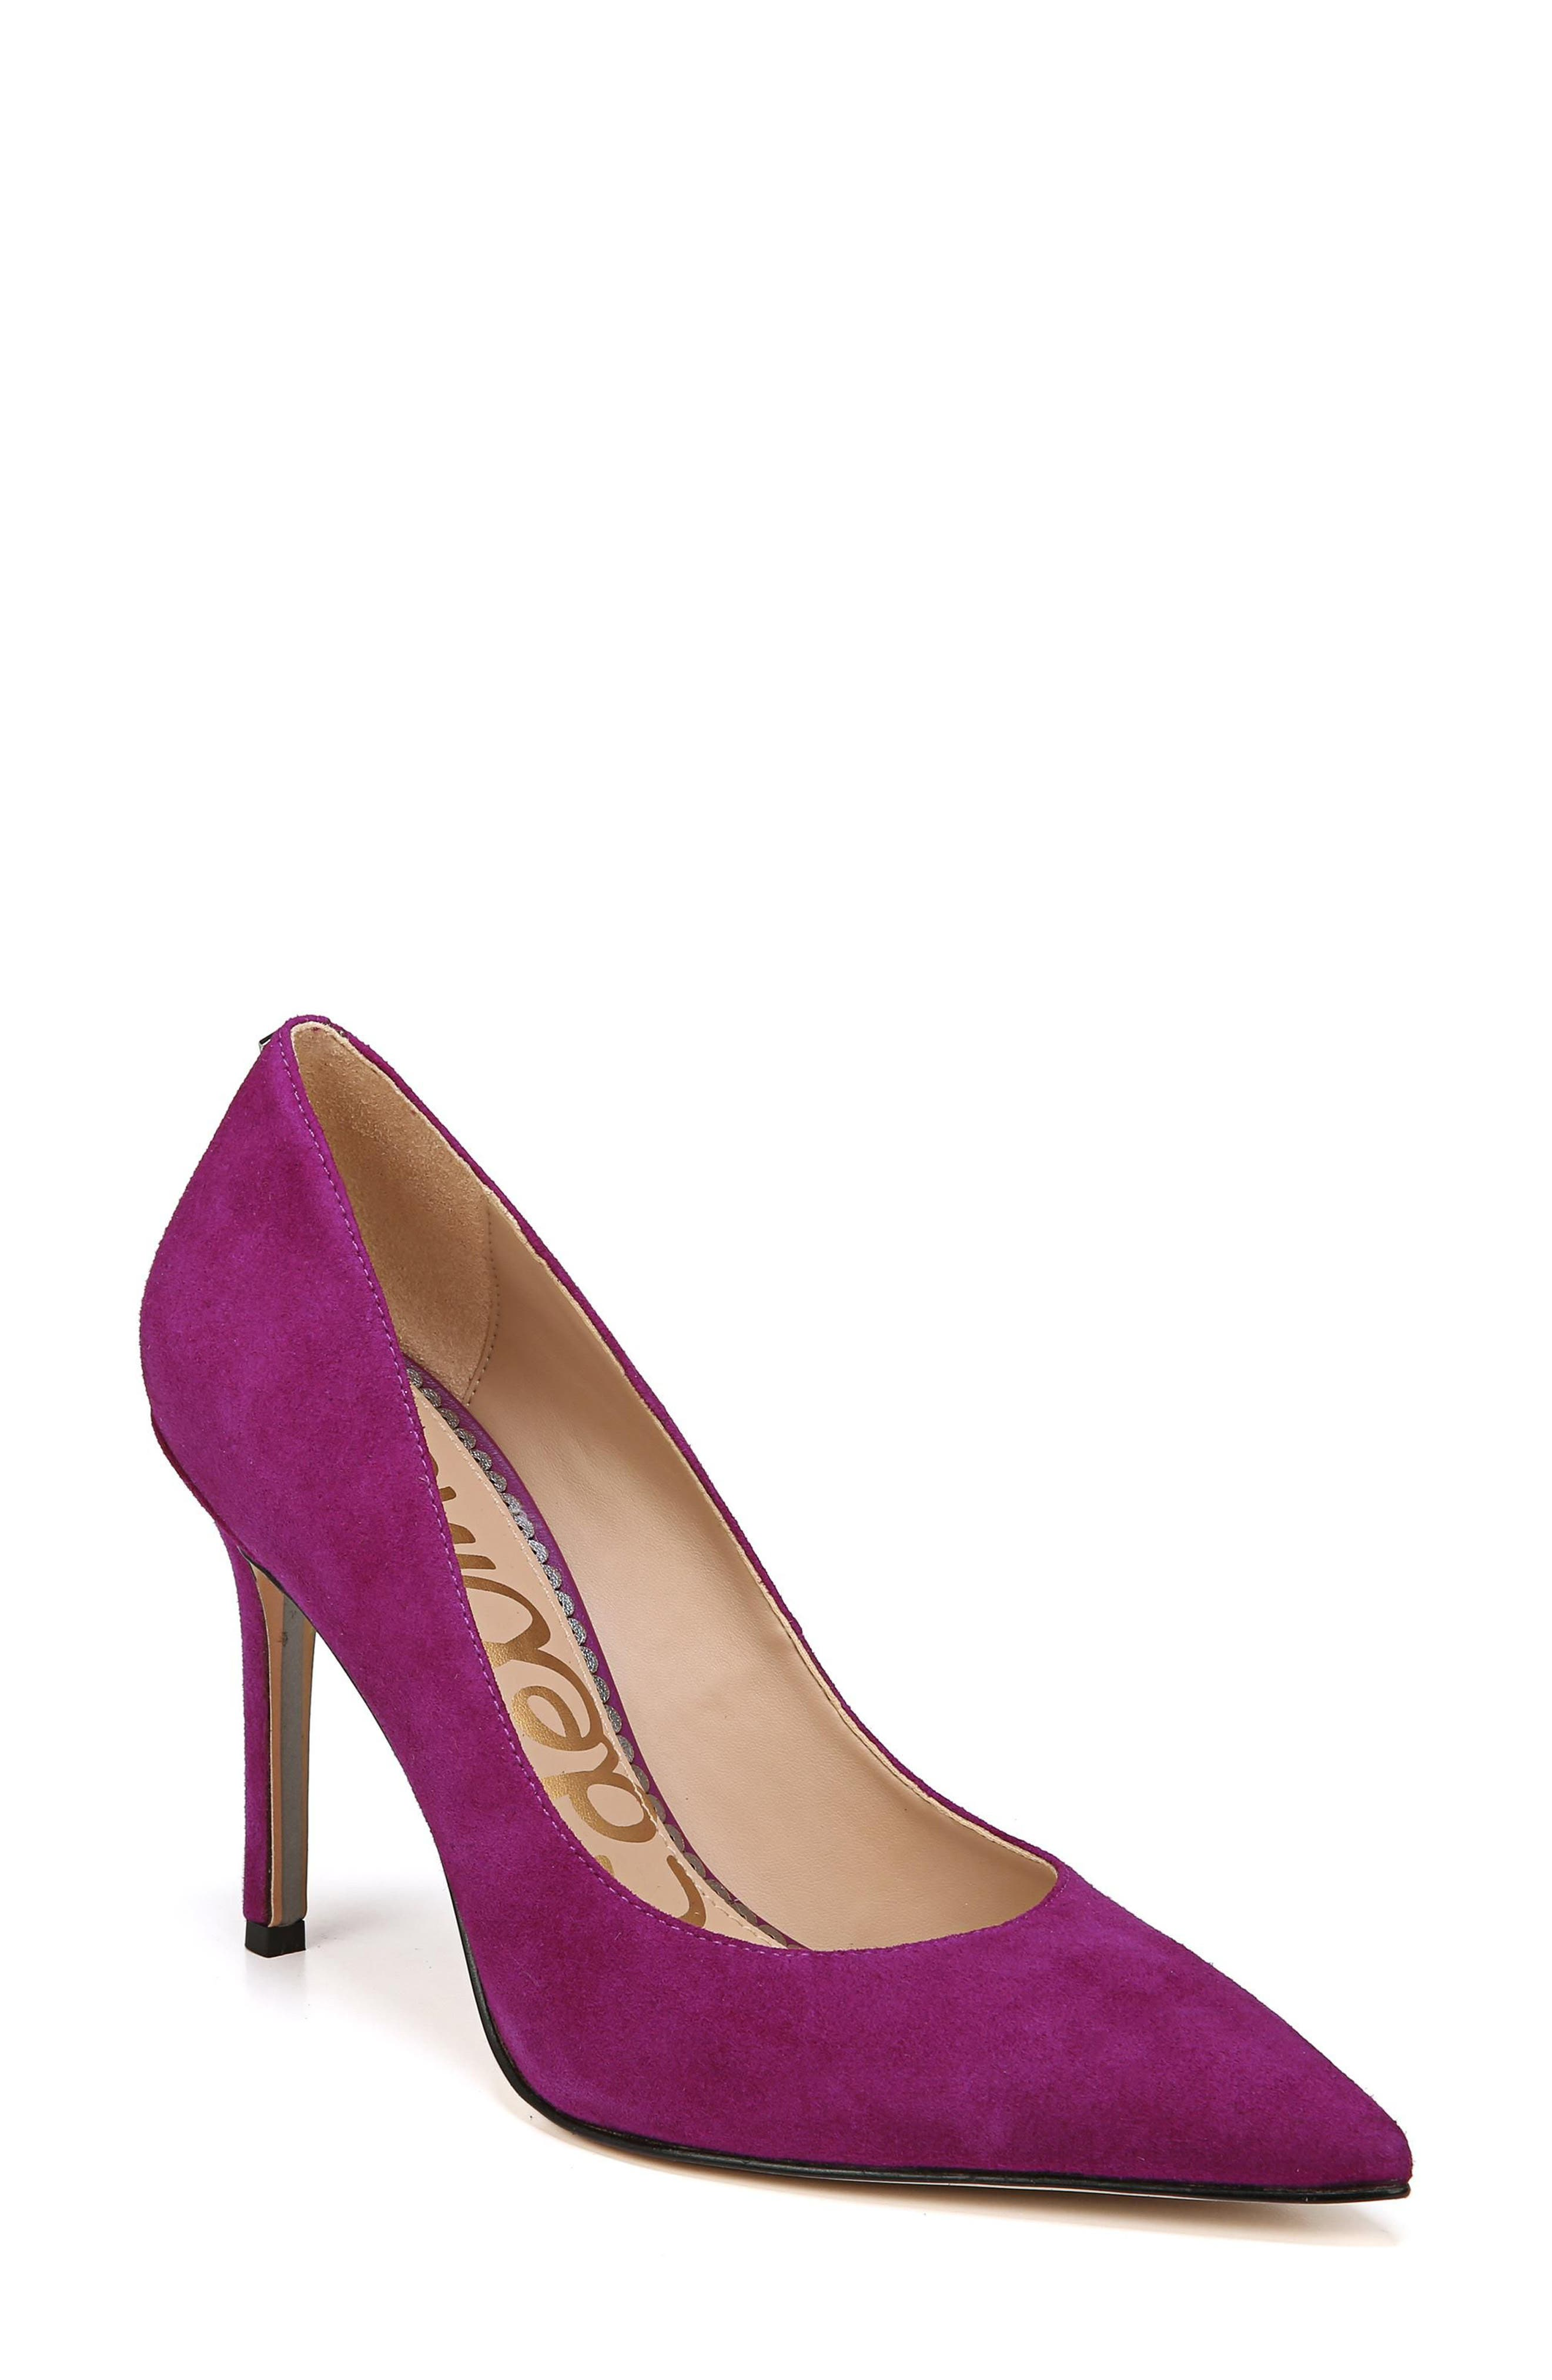 Hazel Pointy Toe Pump,                             Main thumbnail 1, color,                             Purple Plum Suede